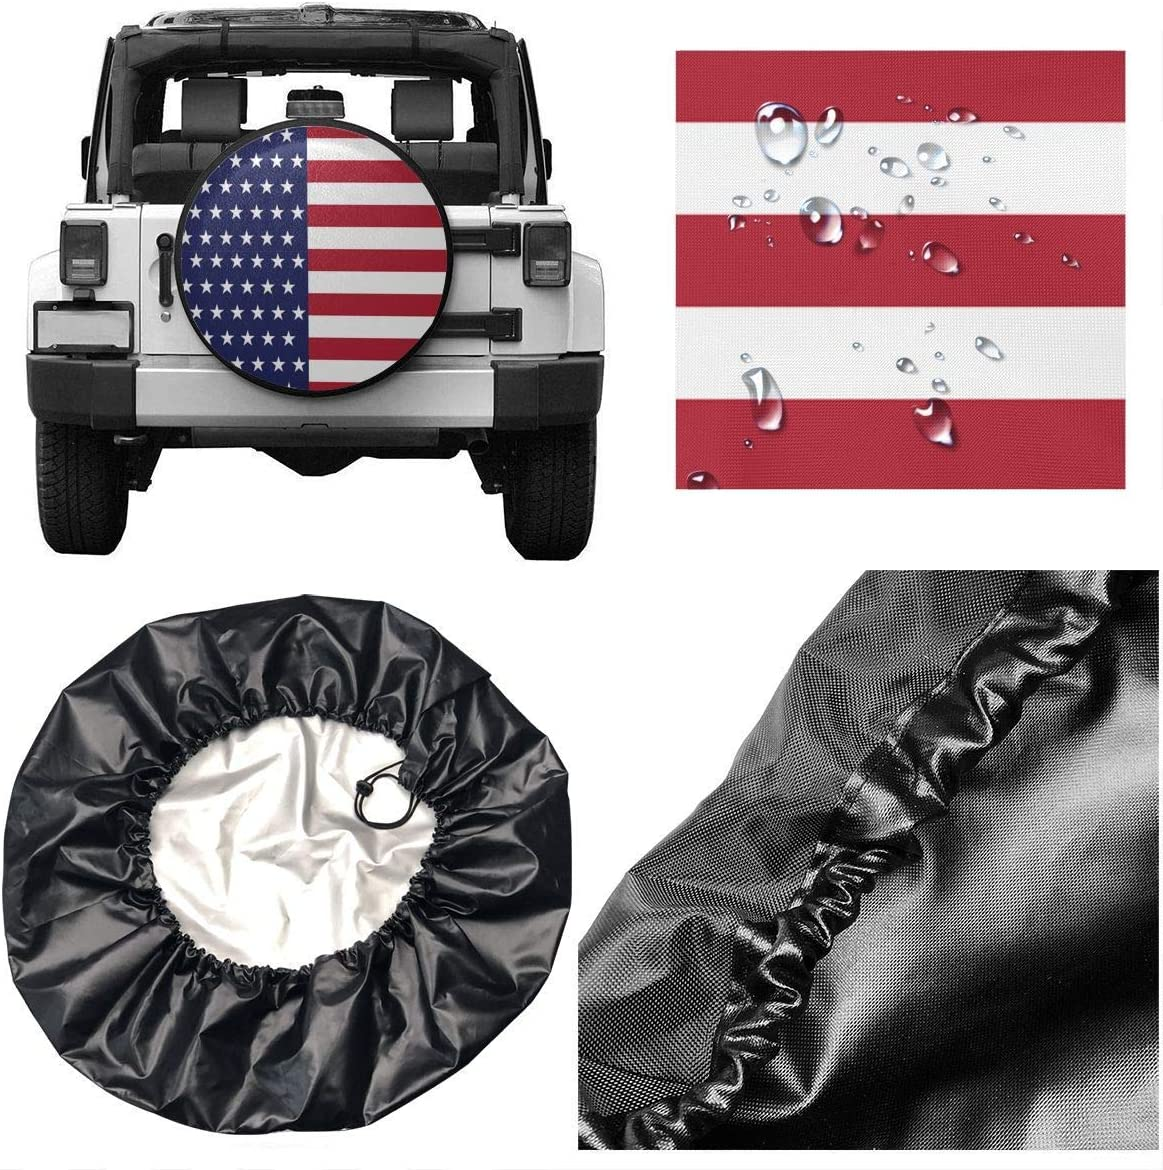 RV SUV Truck Wheel Waterproof Spare Tire Cover Canadian Armed Forces Wheel Covers Universal Tires Protectors for Trailer